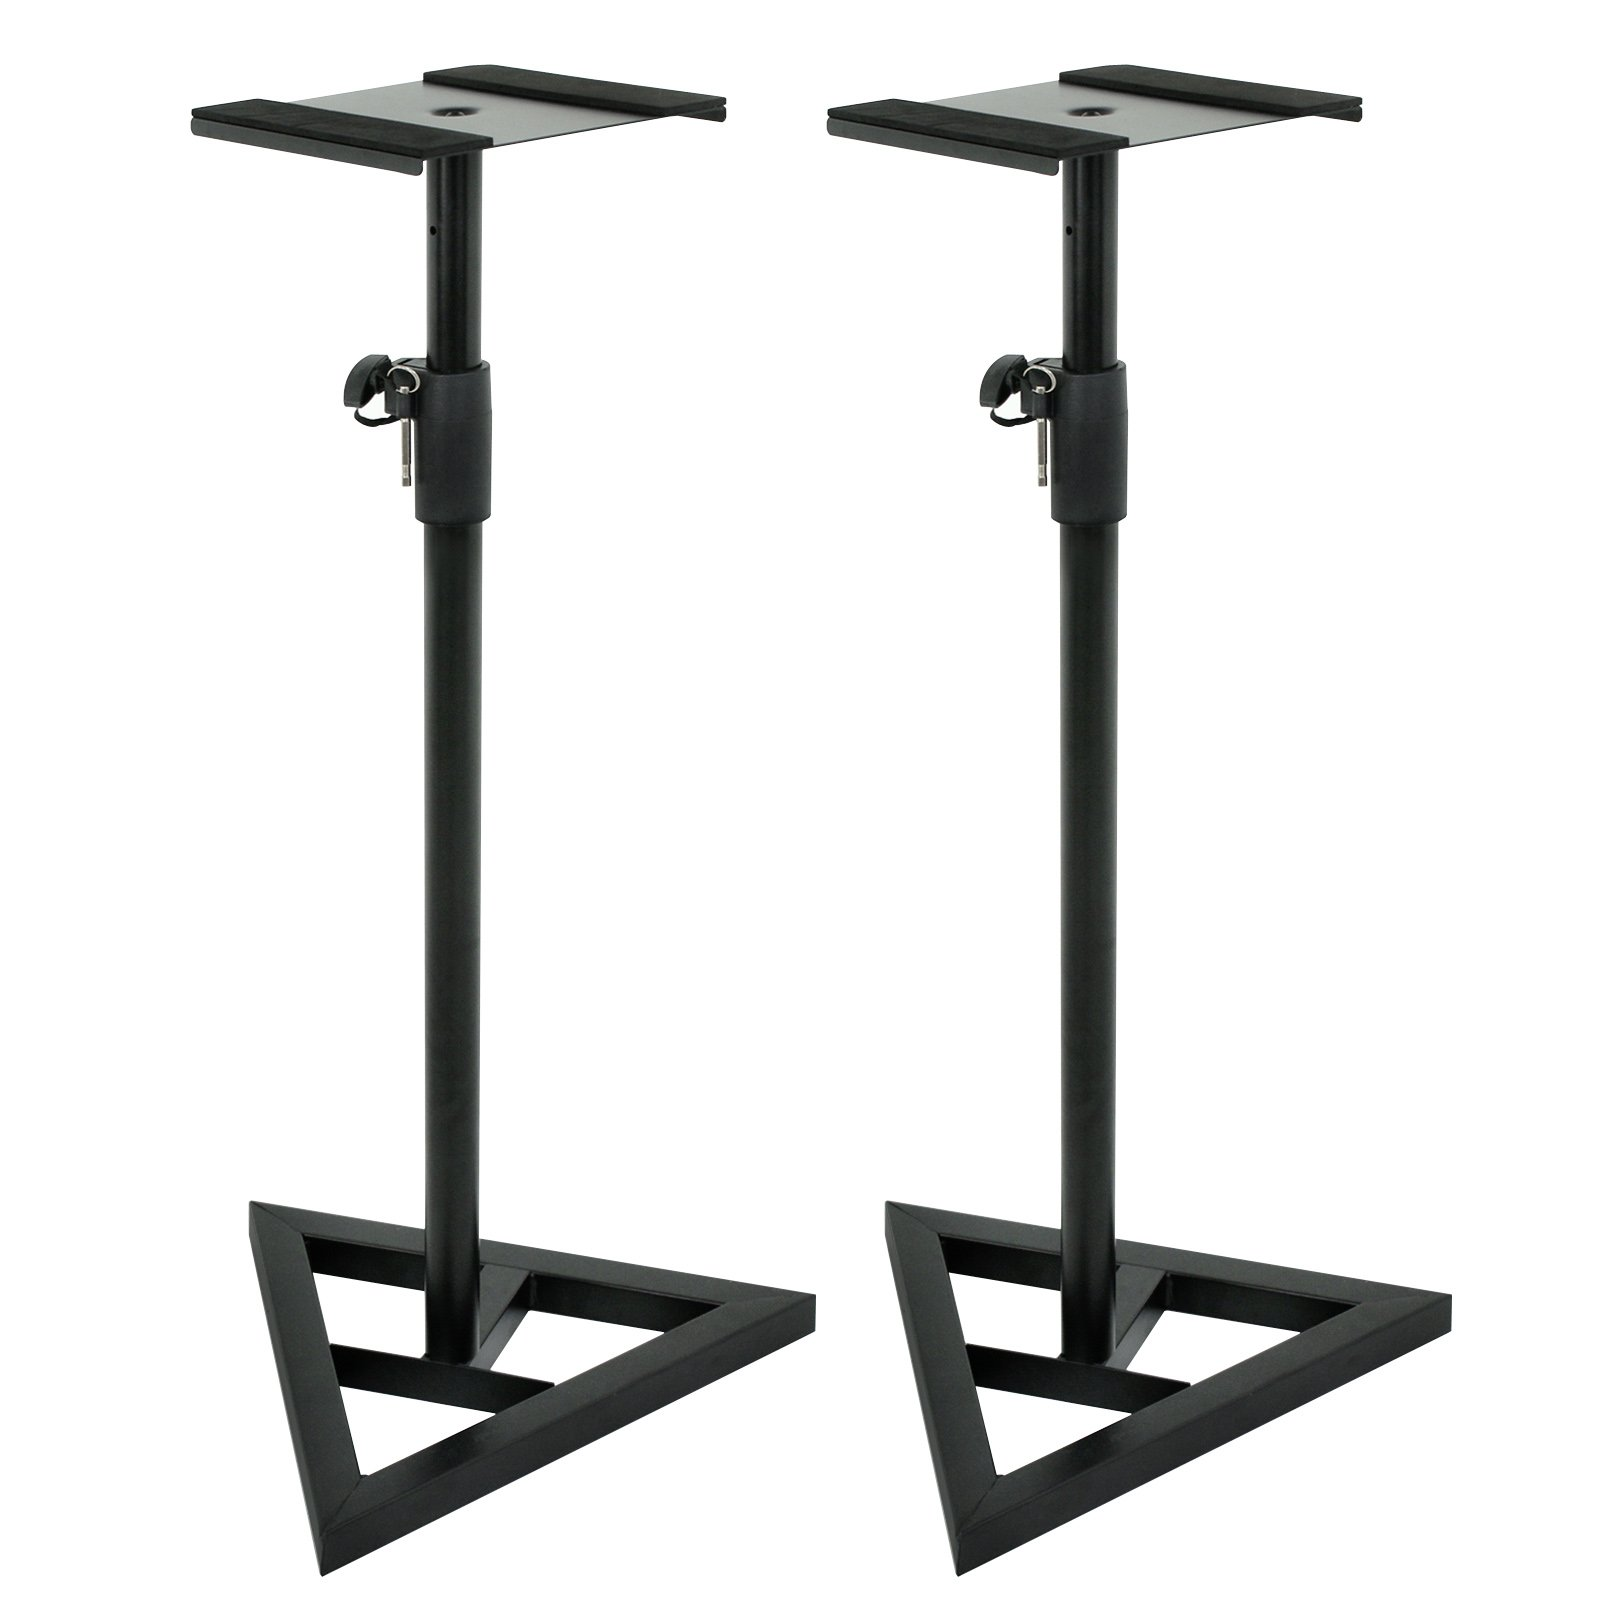 ZENY Pair of Studio Monitor Speaker Stands Height Adjustable Concert Band DJ Studio Floor Stands w/Stable Triangle Base, Black by ZENY